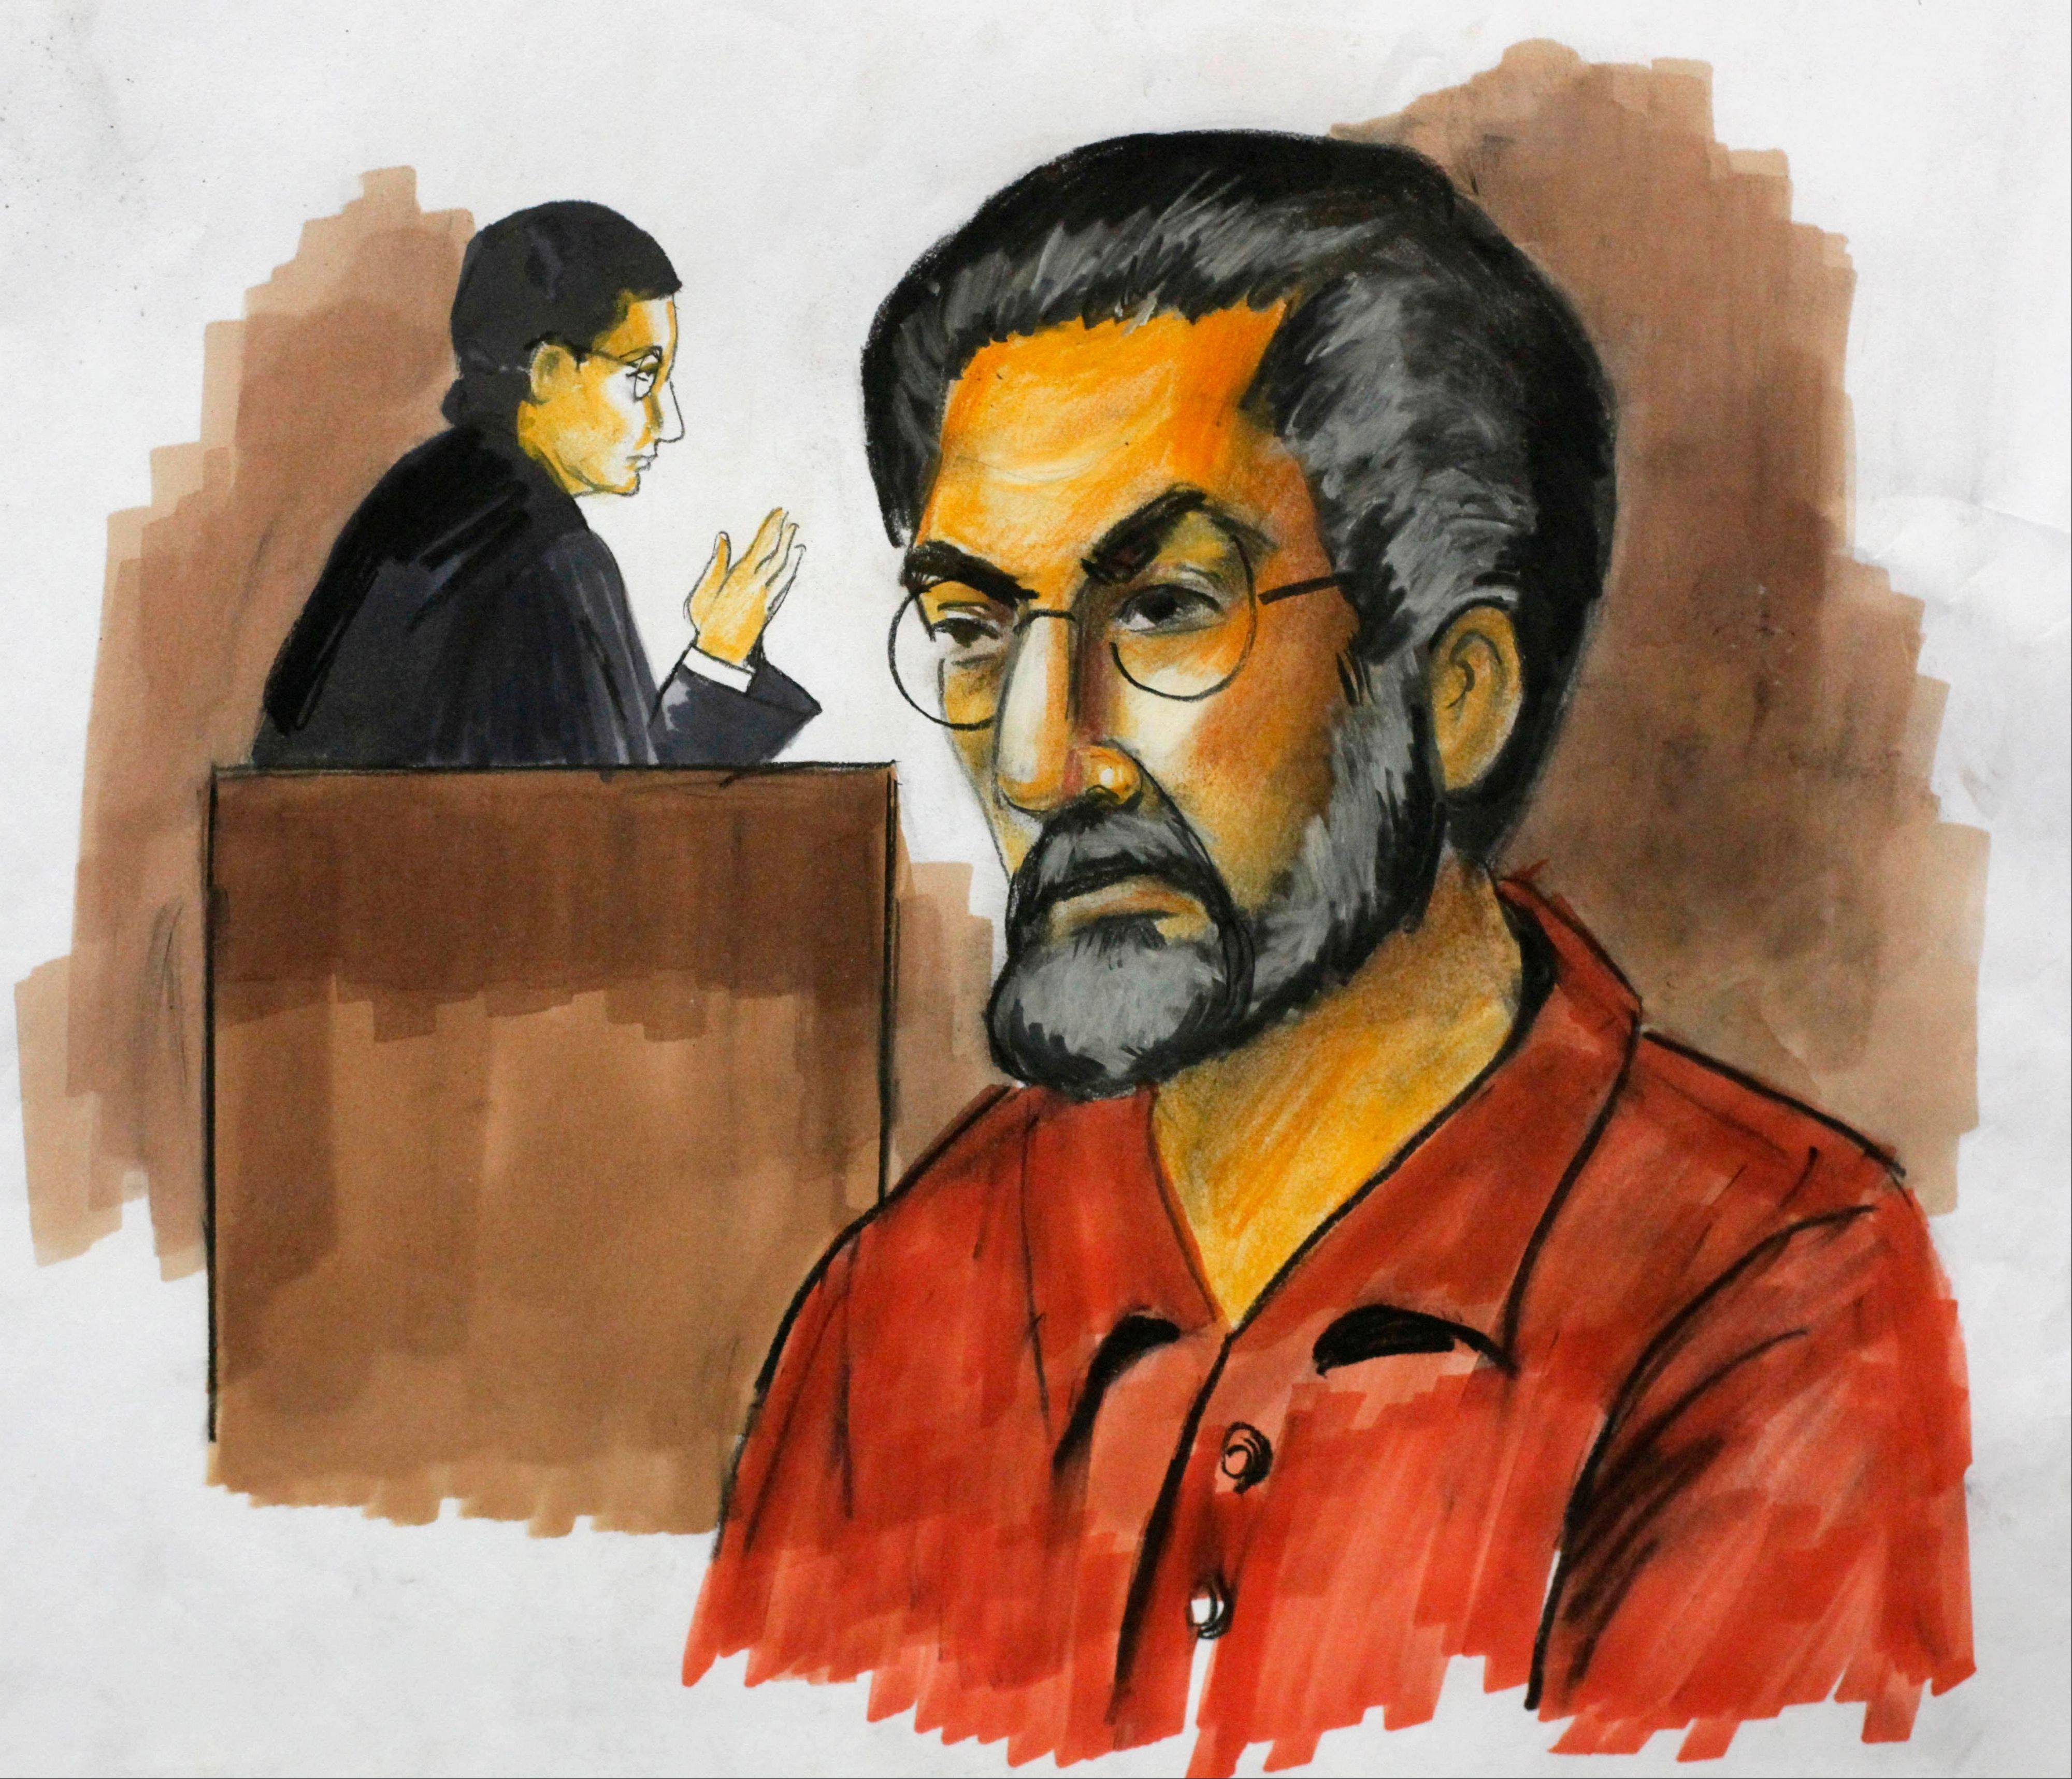 This Dec. 2, 2009, courtroom sketch shows Tahawwur Rana, who will be sentenced Thursday for aiding a terrorist attack in Mumbai, India.